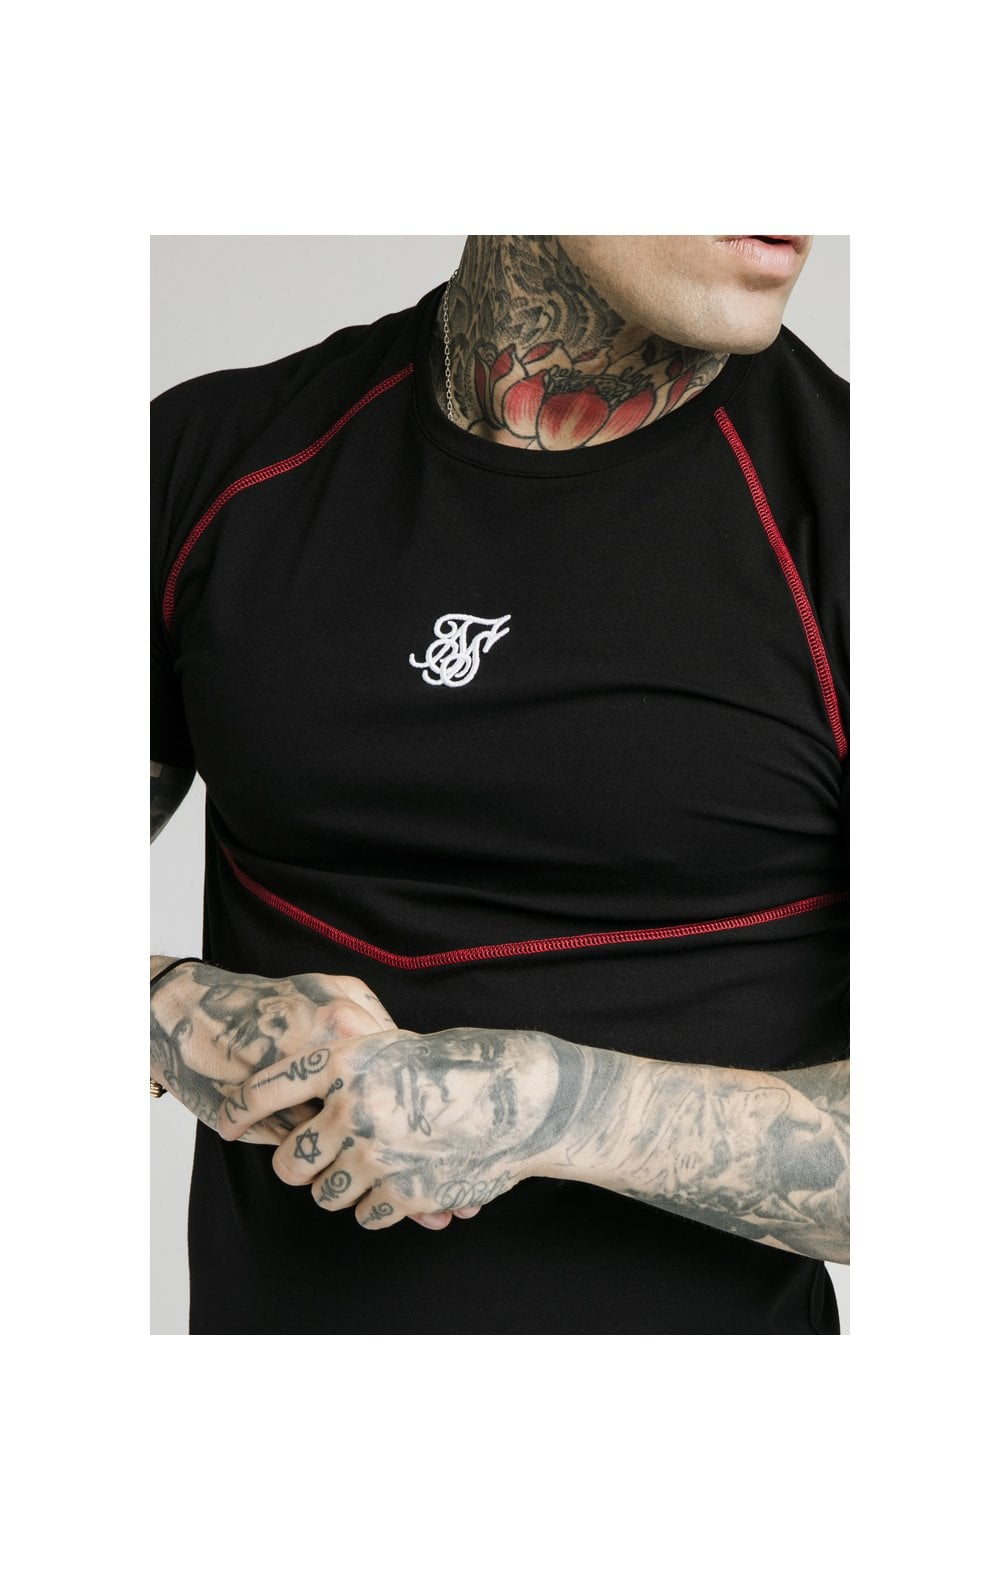 SikSilk Cover Stitch Raglan Gym Tee - Black & Red